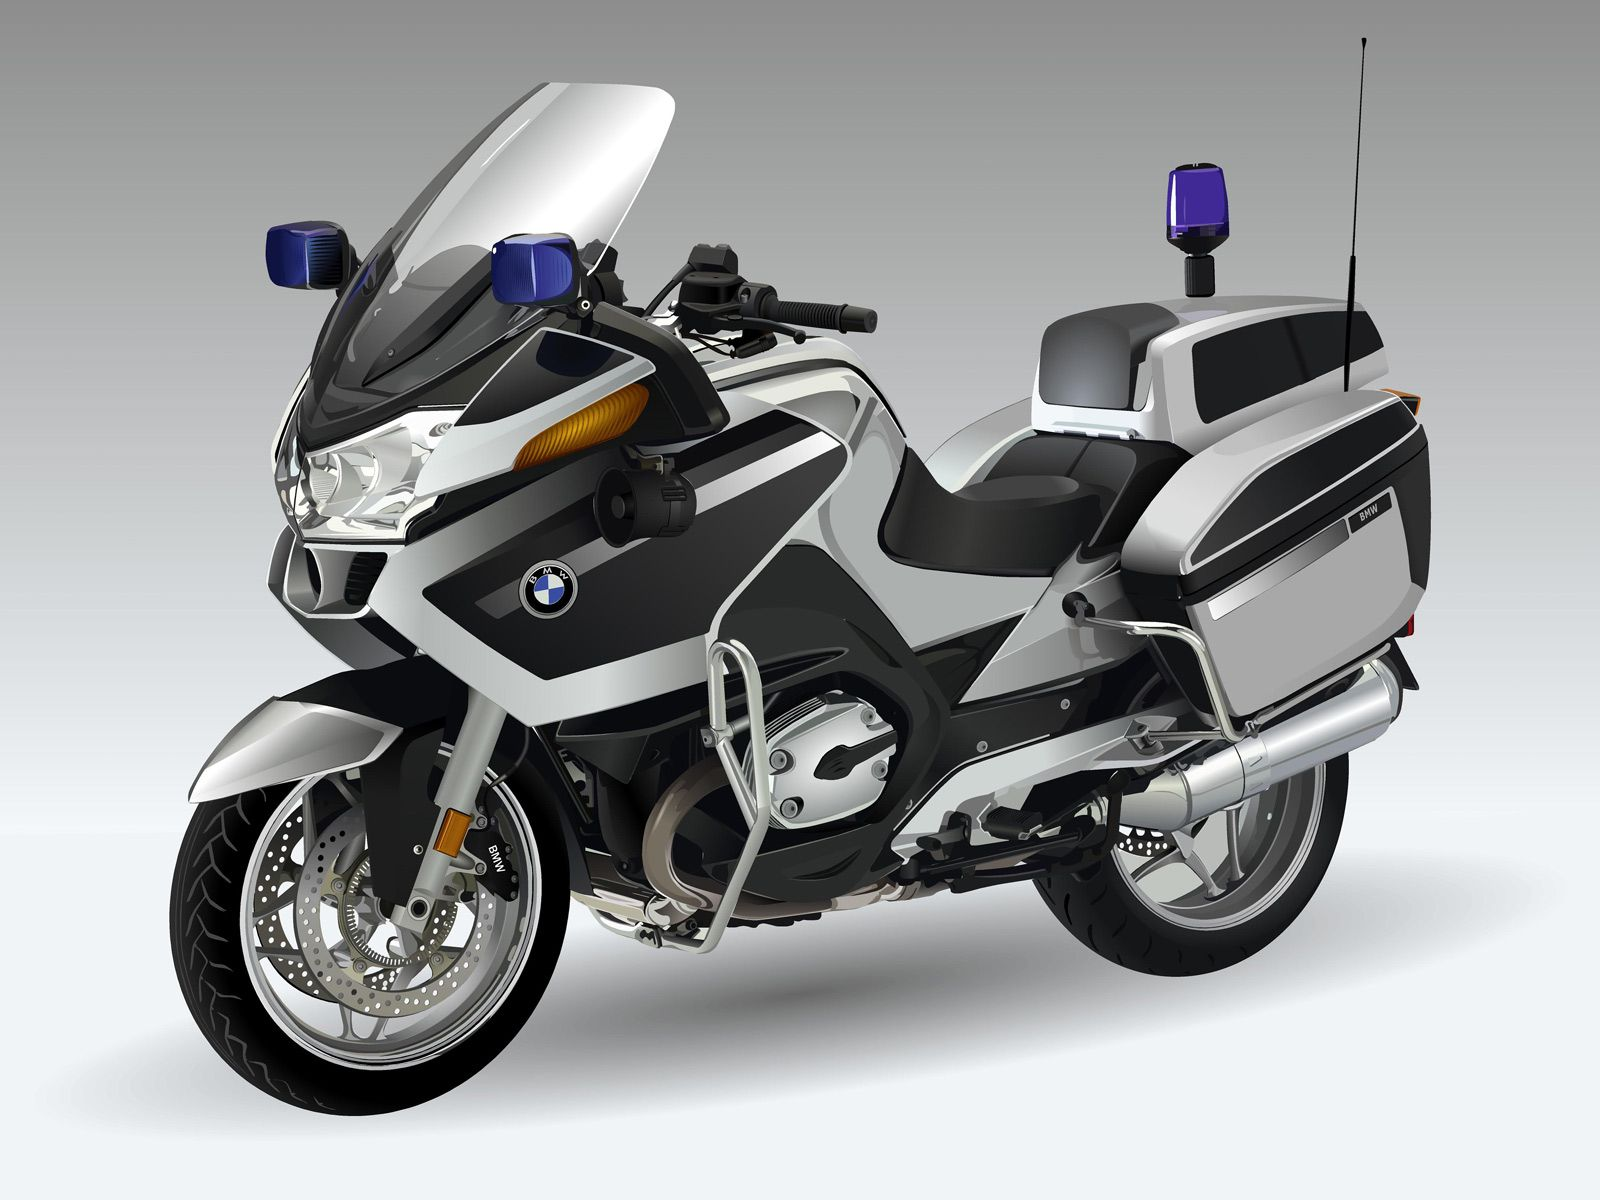 bmw police motorcycle motorcycles vector deviantart motorbikes vehicles r1200rt camping moto bike honolulu bikes cars rt smithsonian 1200 museum desktop